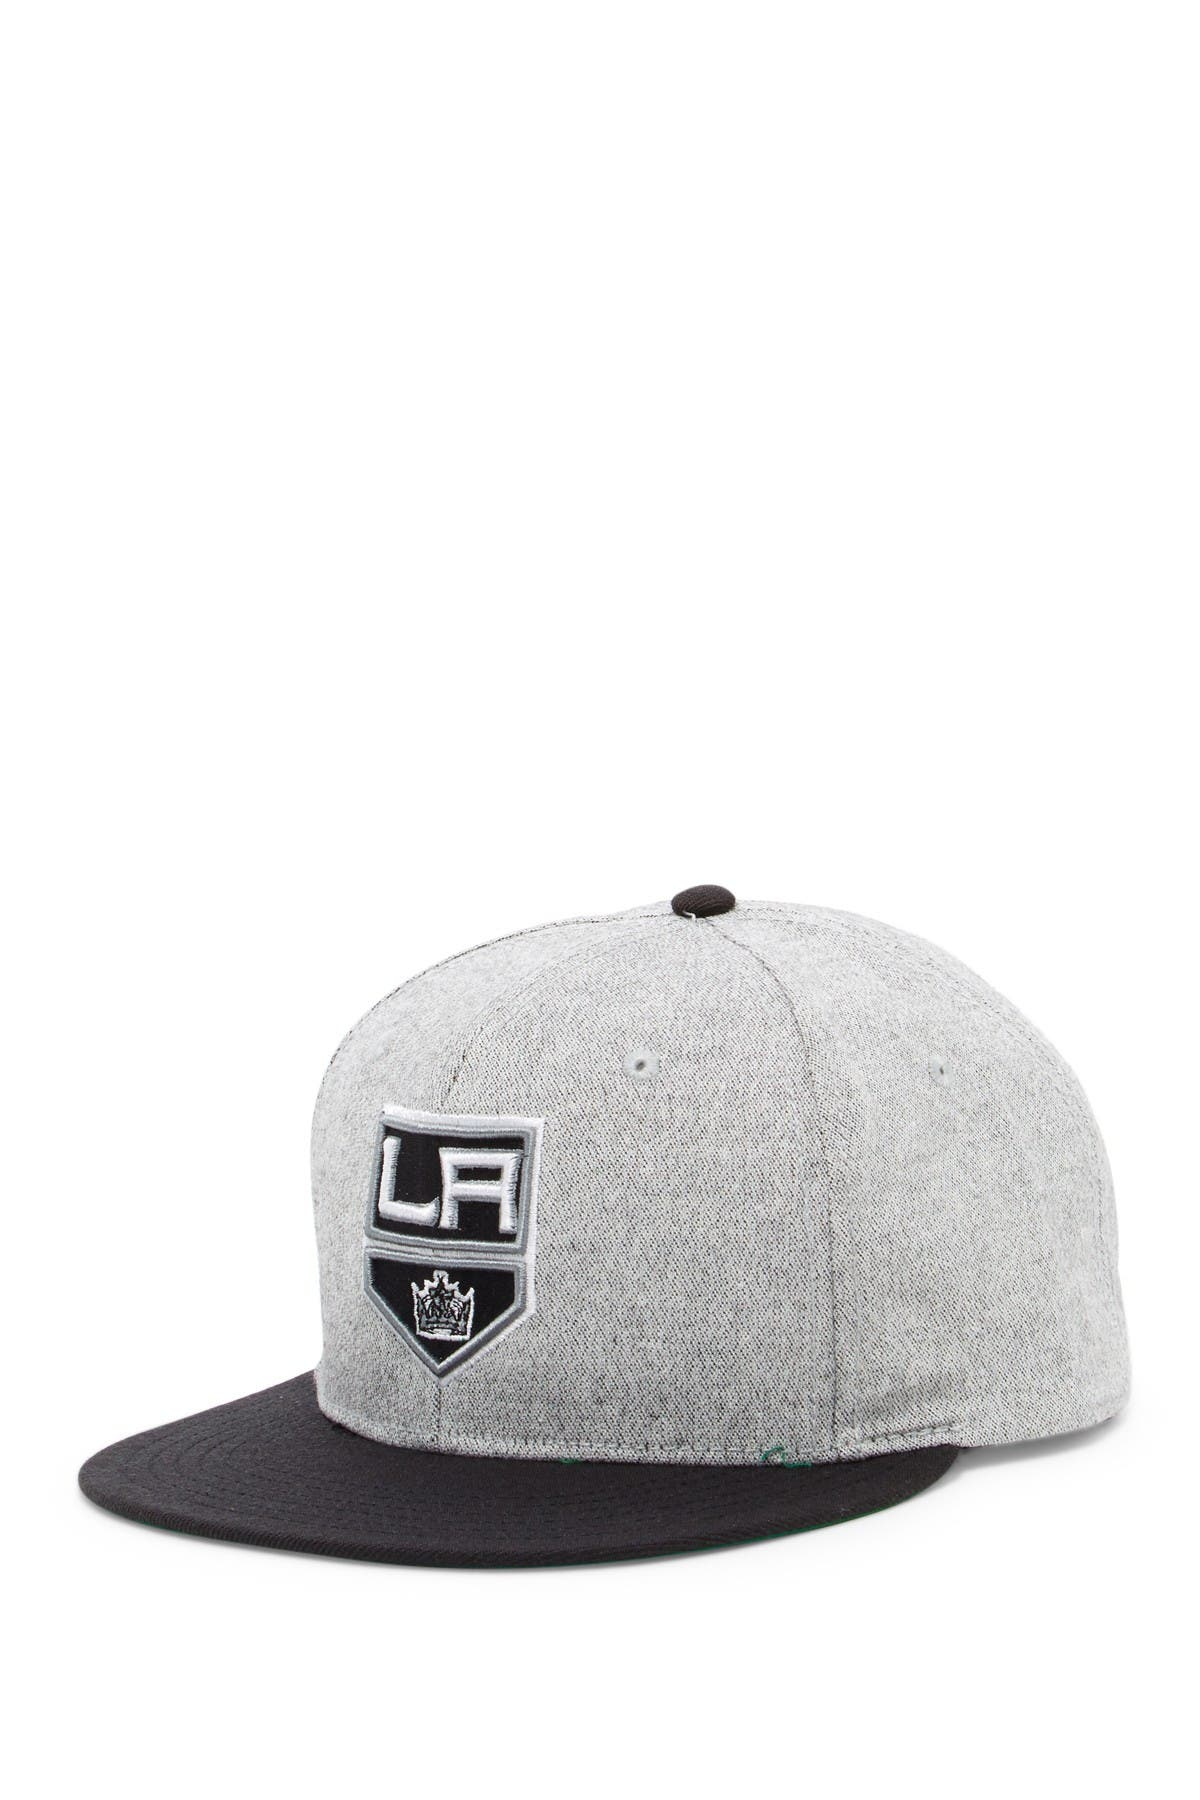 Image of American Needle NHL Los Angeles Kings Castle Rock Baseball Cap